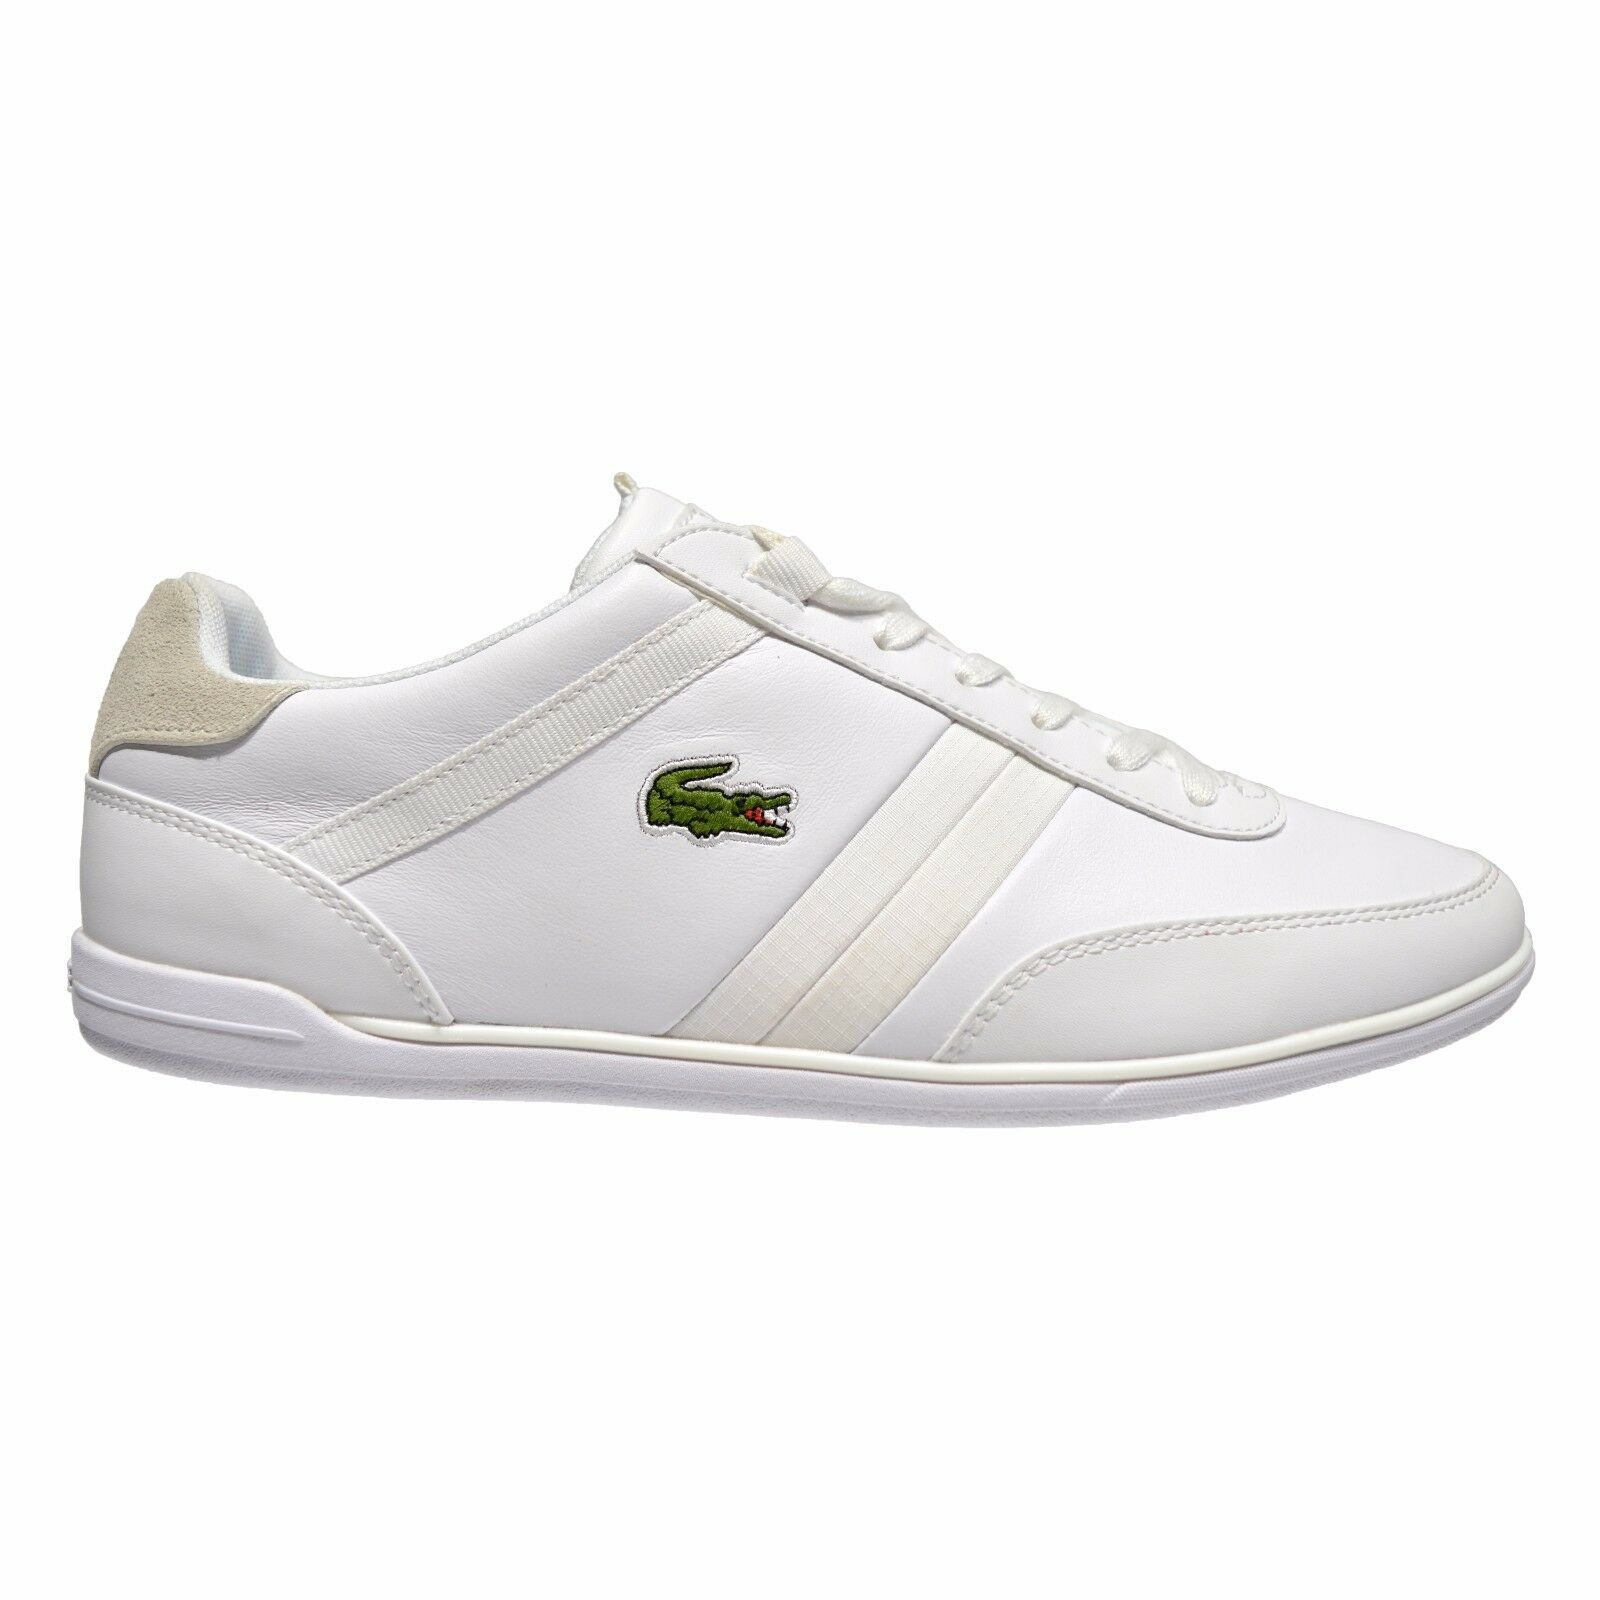 Lacoste Giron Men's Leather Low Top Sneakers White